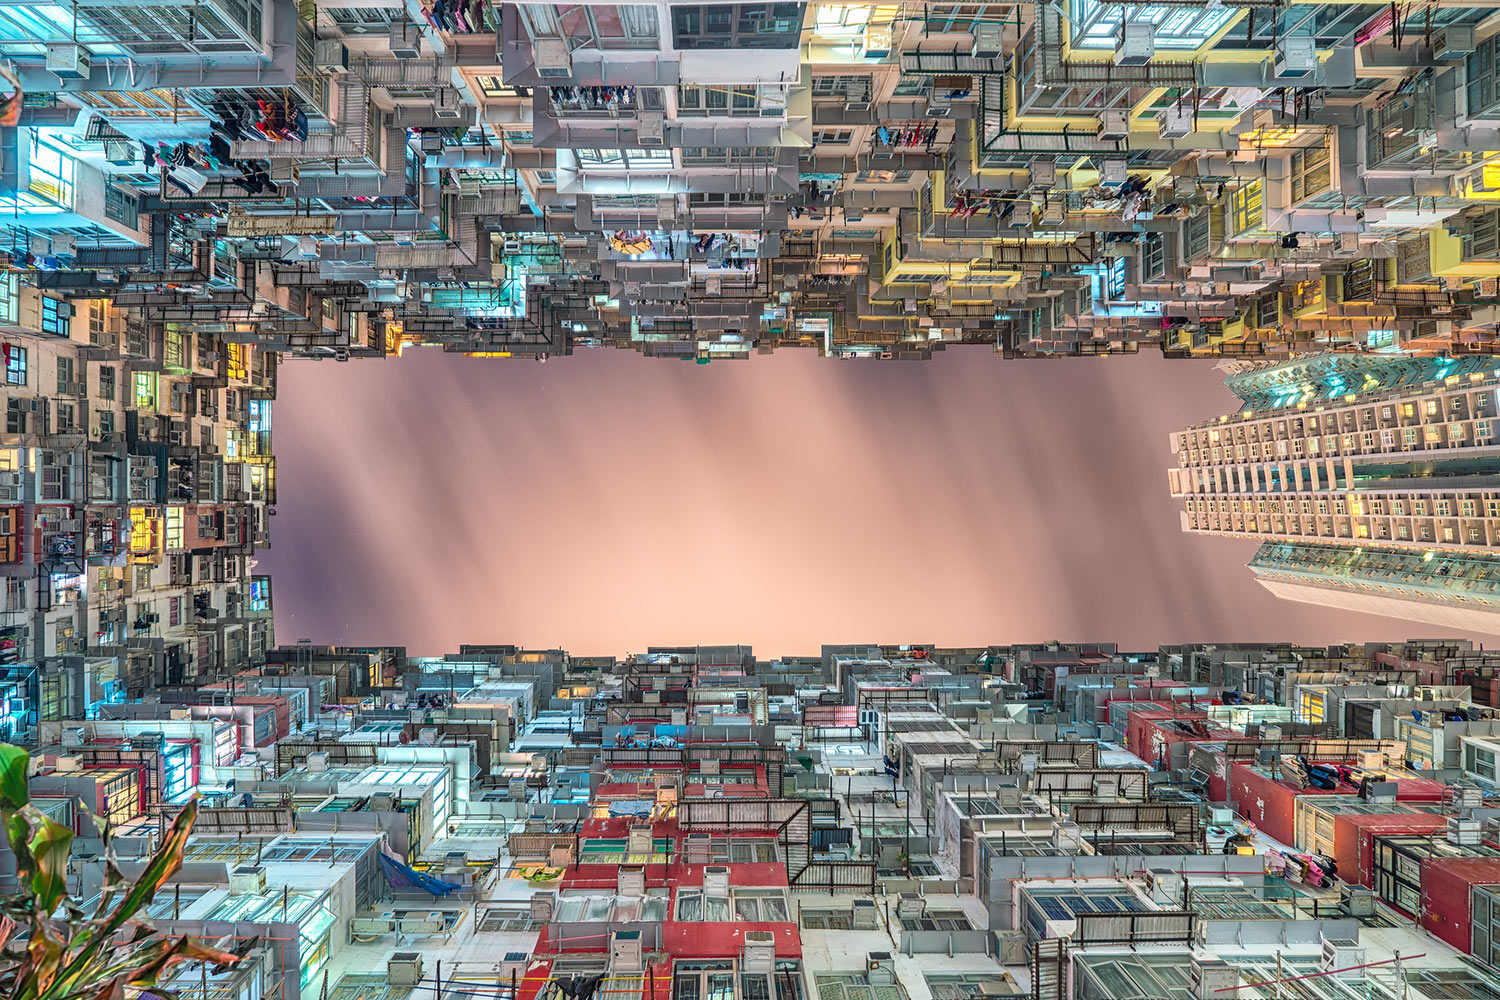 View of a city block courtyard in Hong Kong, a Special Administrative Region of the People's Republic of China